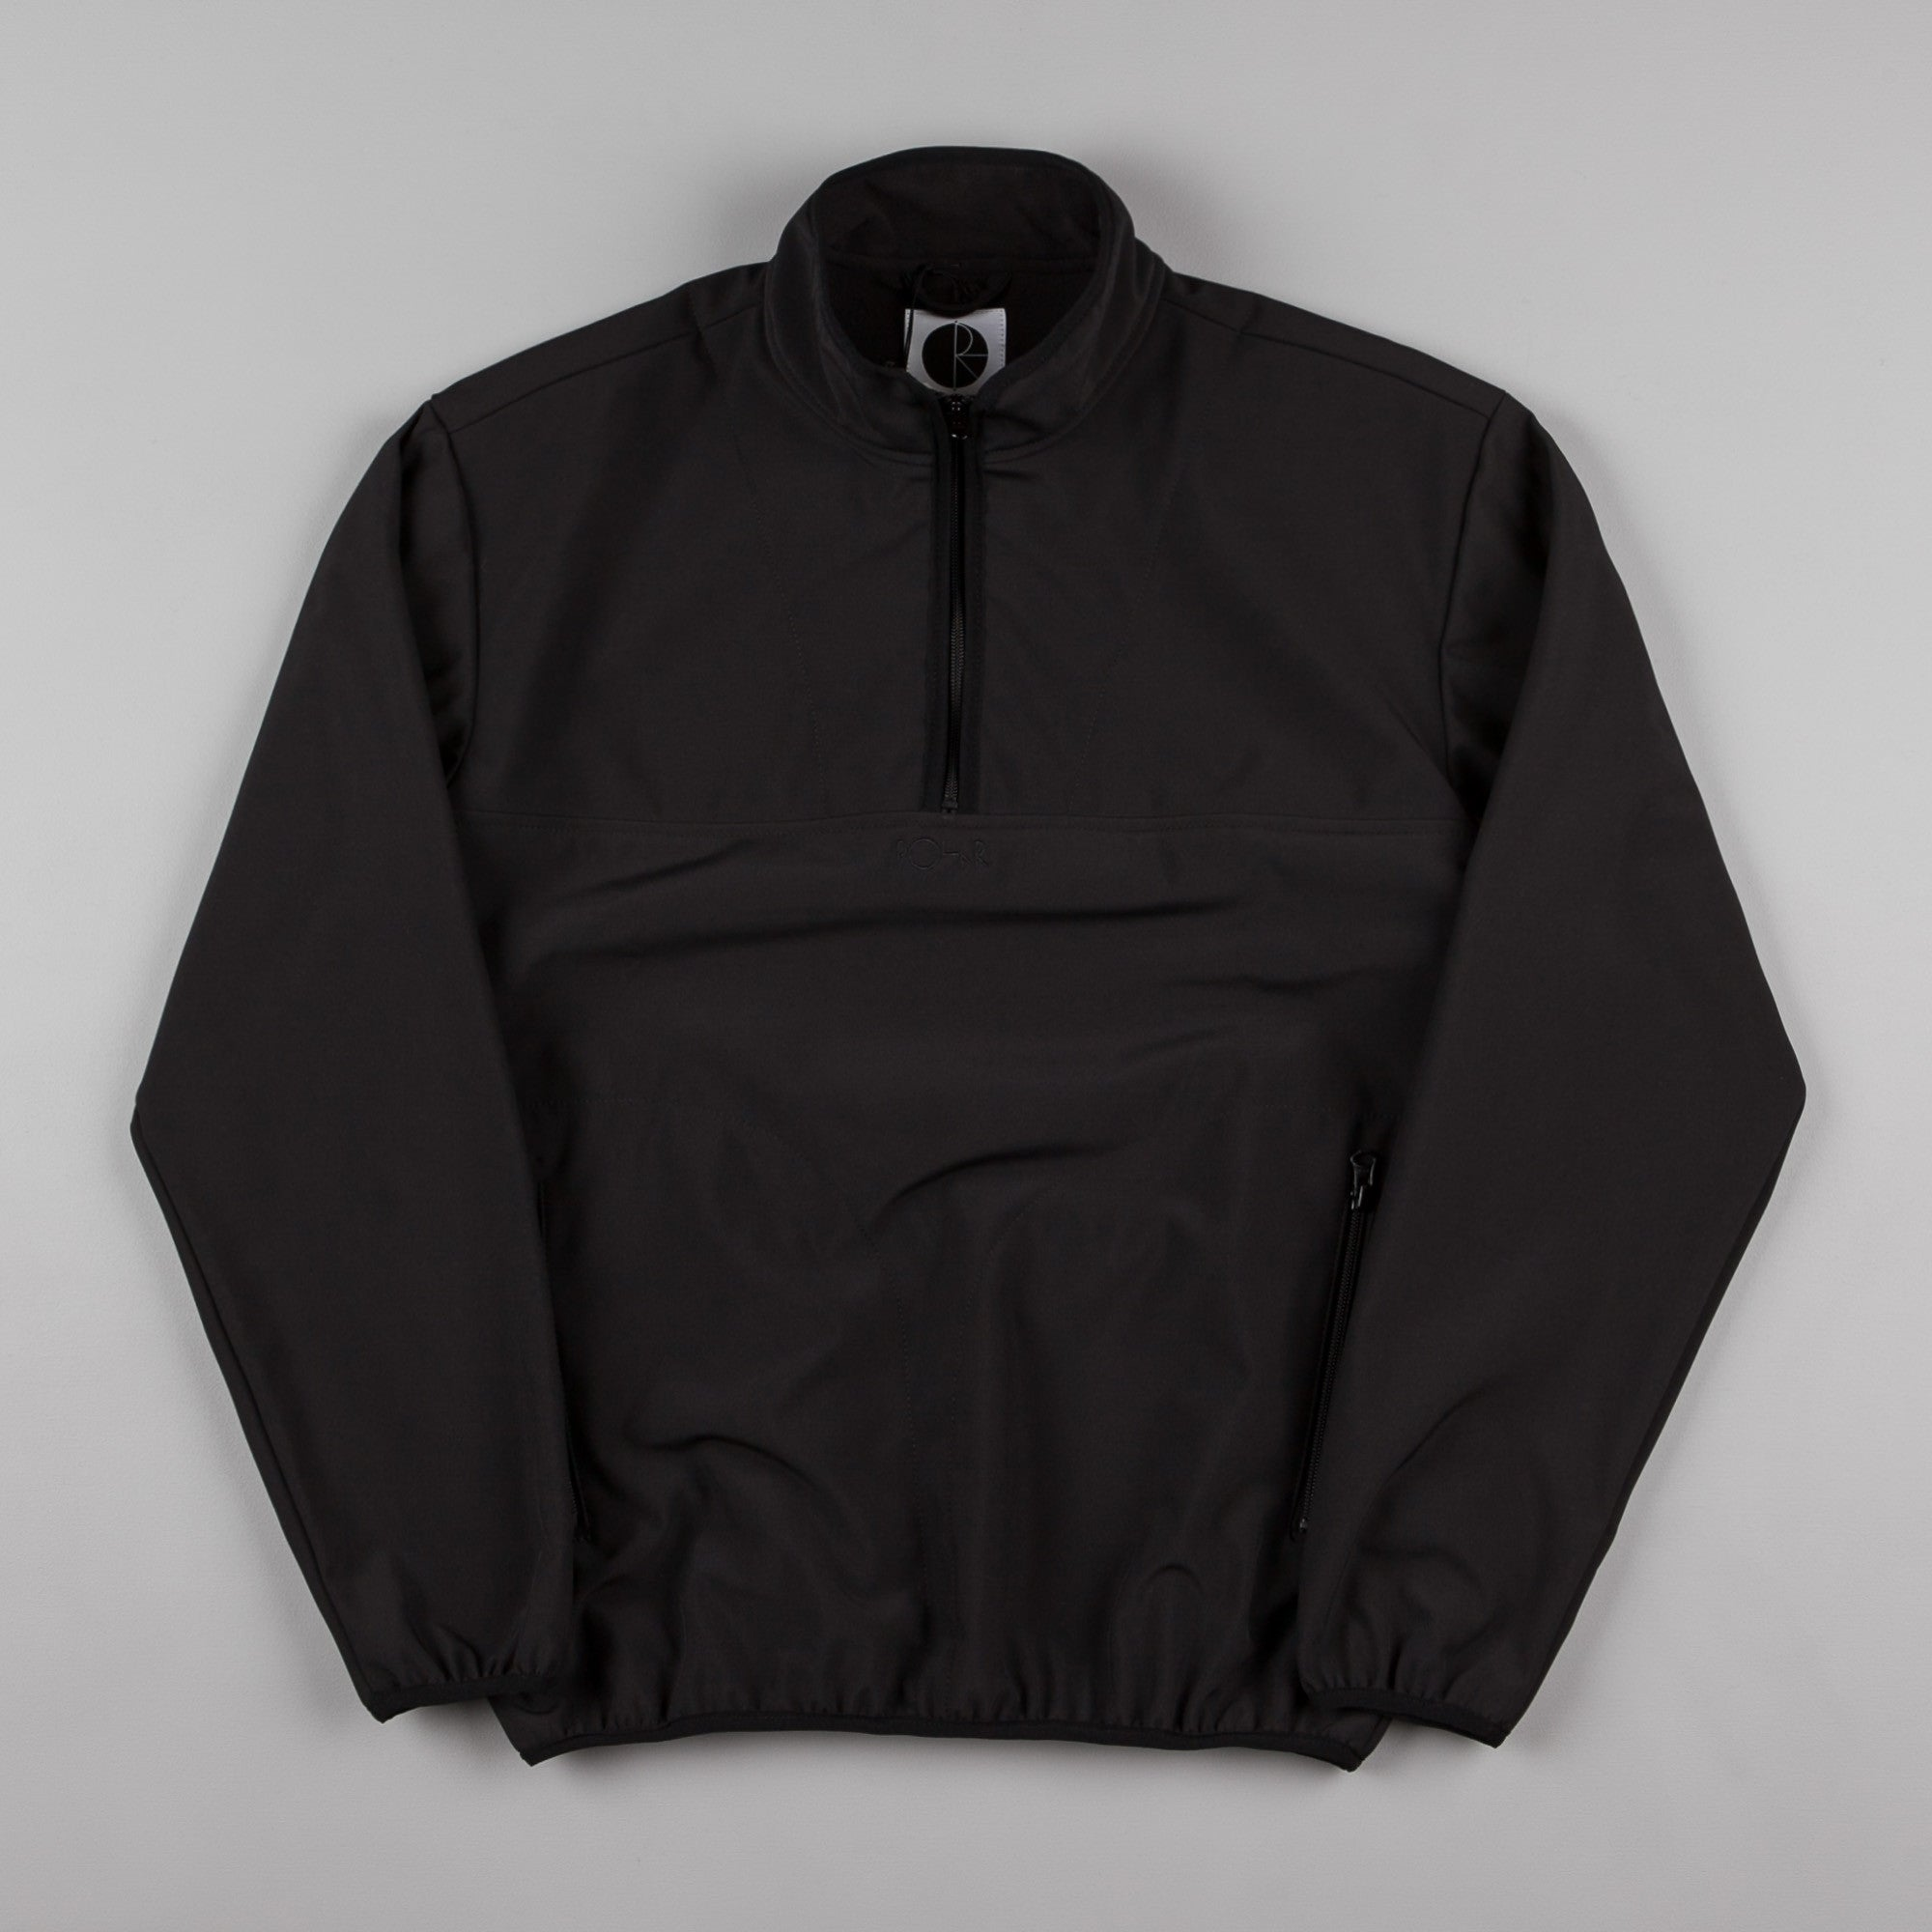 Polar Thermo Shell Jacket - Black